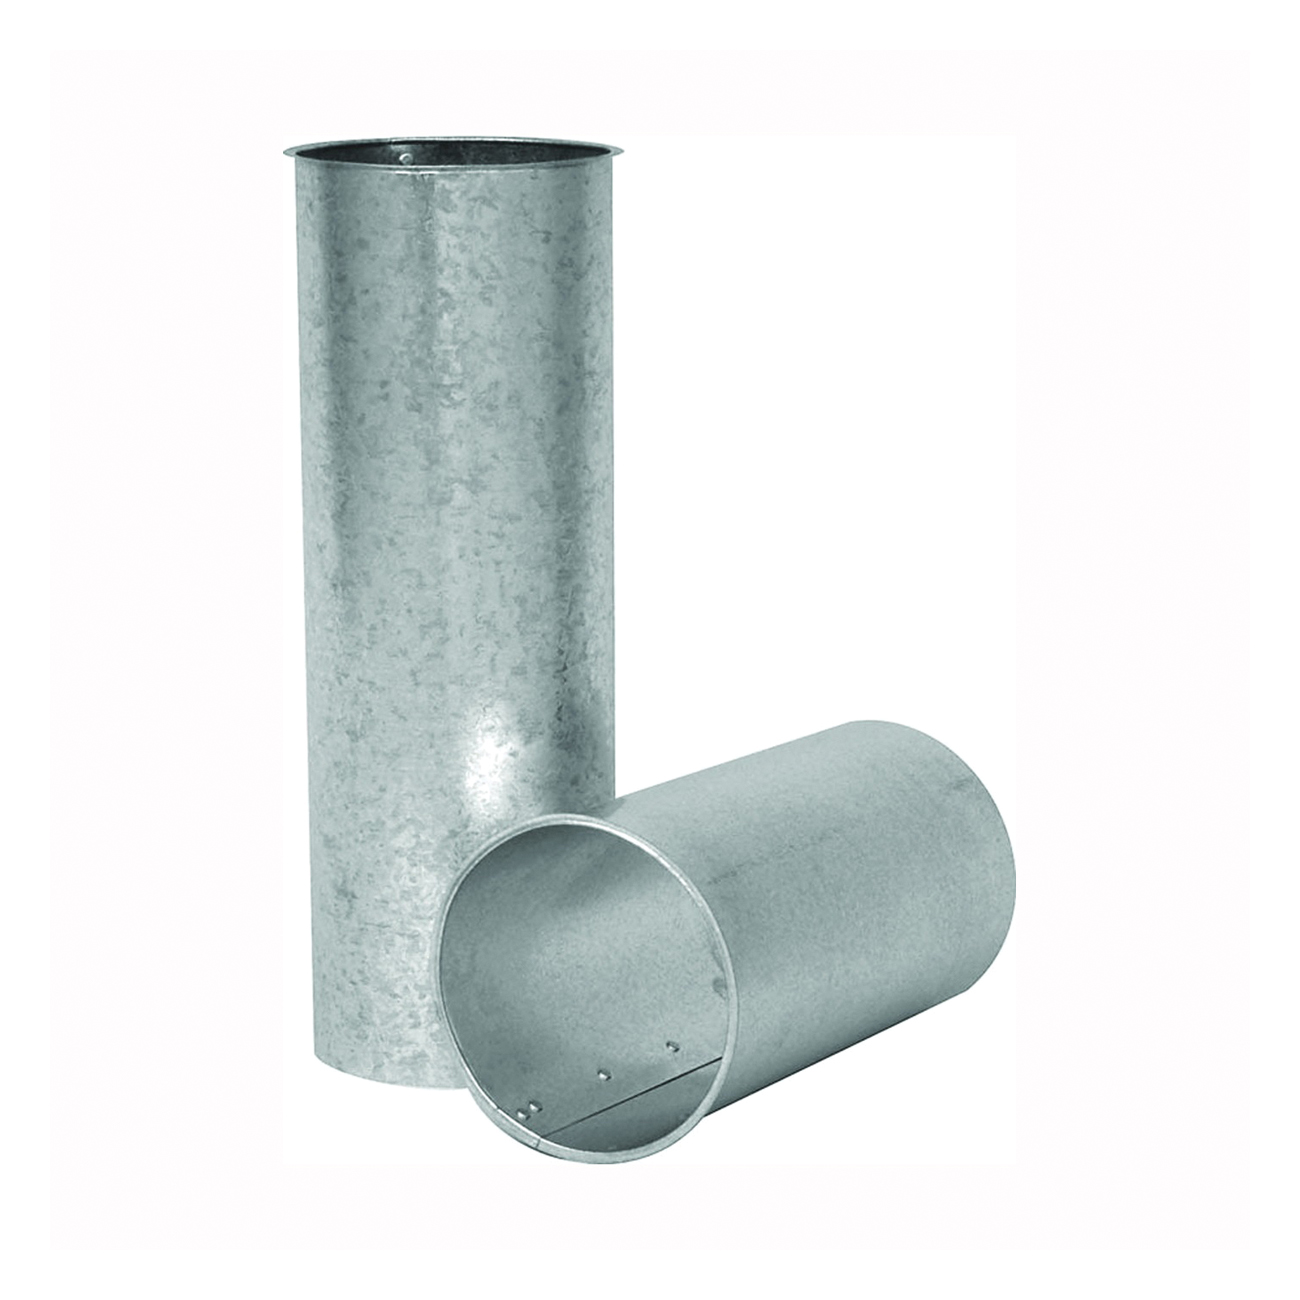 Picture of Imperial GV0939 Chimney Thimble, 28 Gauge, Galvanized Steel, Galvanized